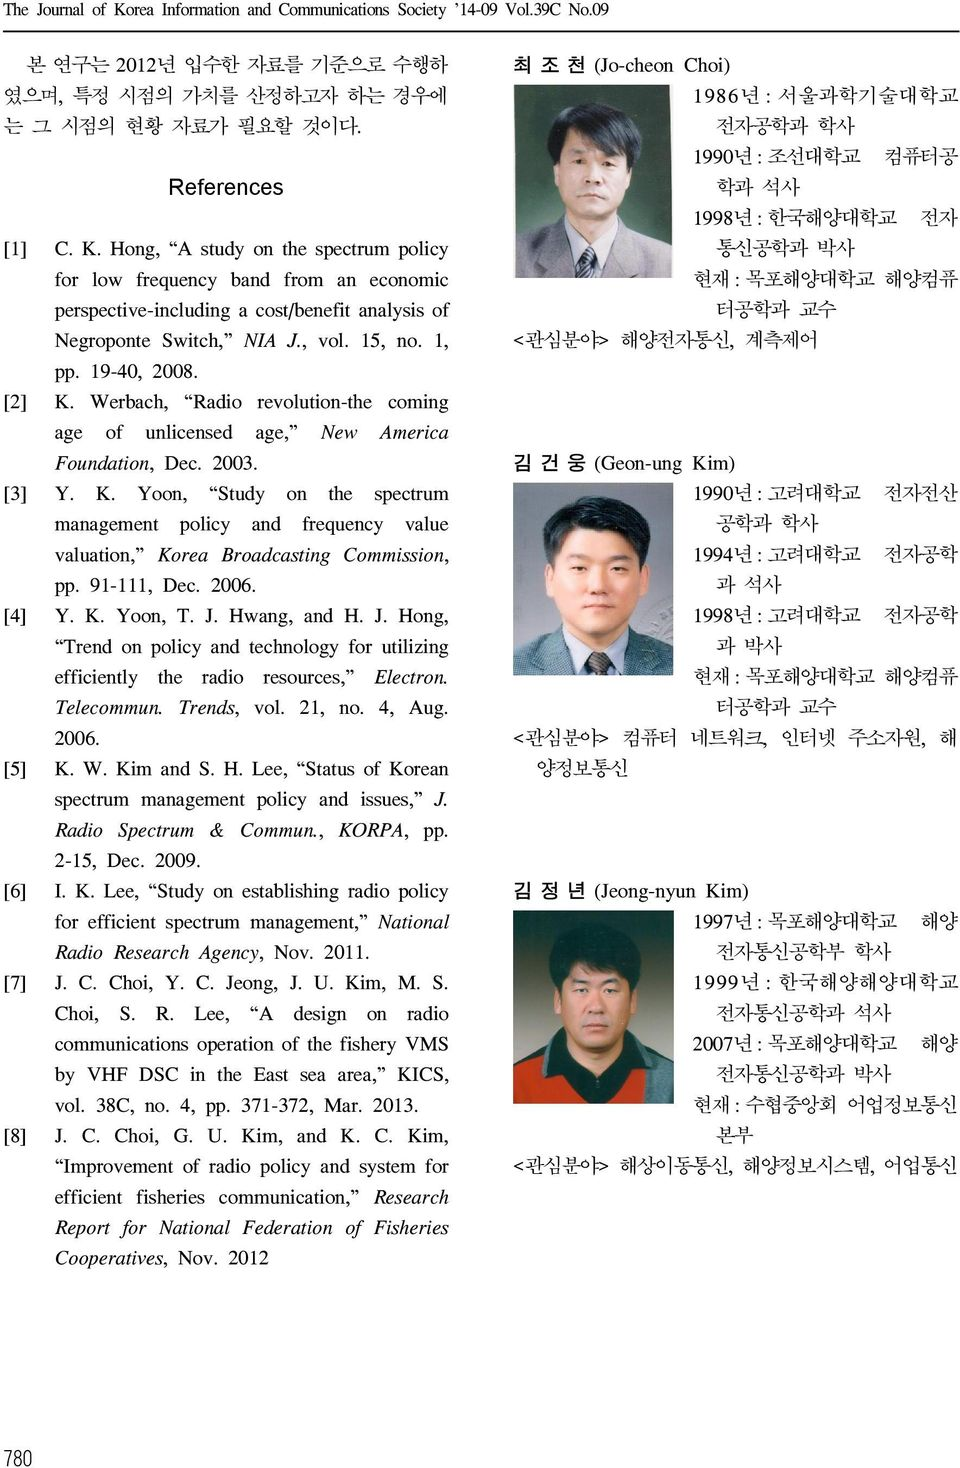 91-111, Dec. 06. [4] Y. K. Yoon, T. J. Hwang, and H. J. Hong, Trend on policy and technology for utilizing efficiently the radio resources, Electron. Telecommun. Trends, vol. 21, no. 4, Aug. 06. [5] K.